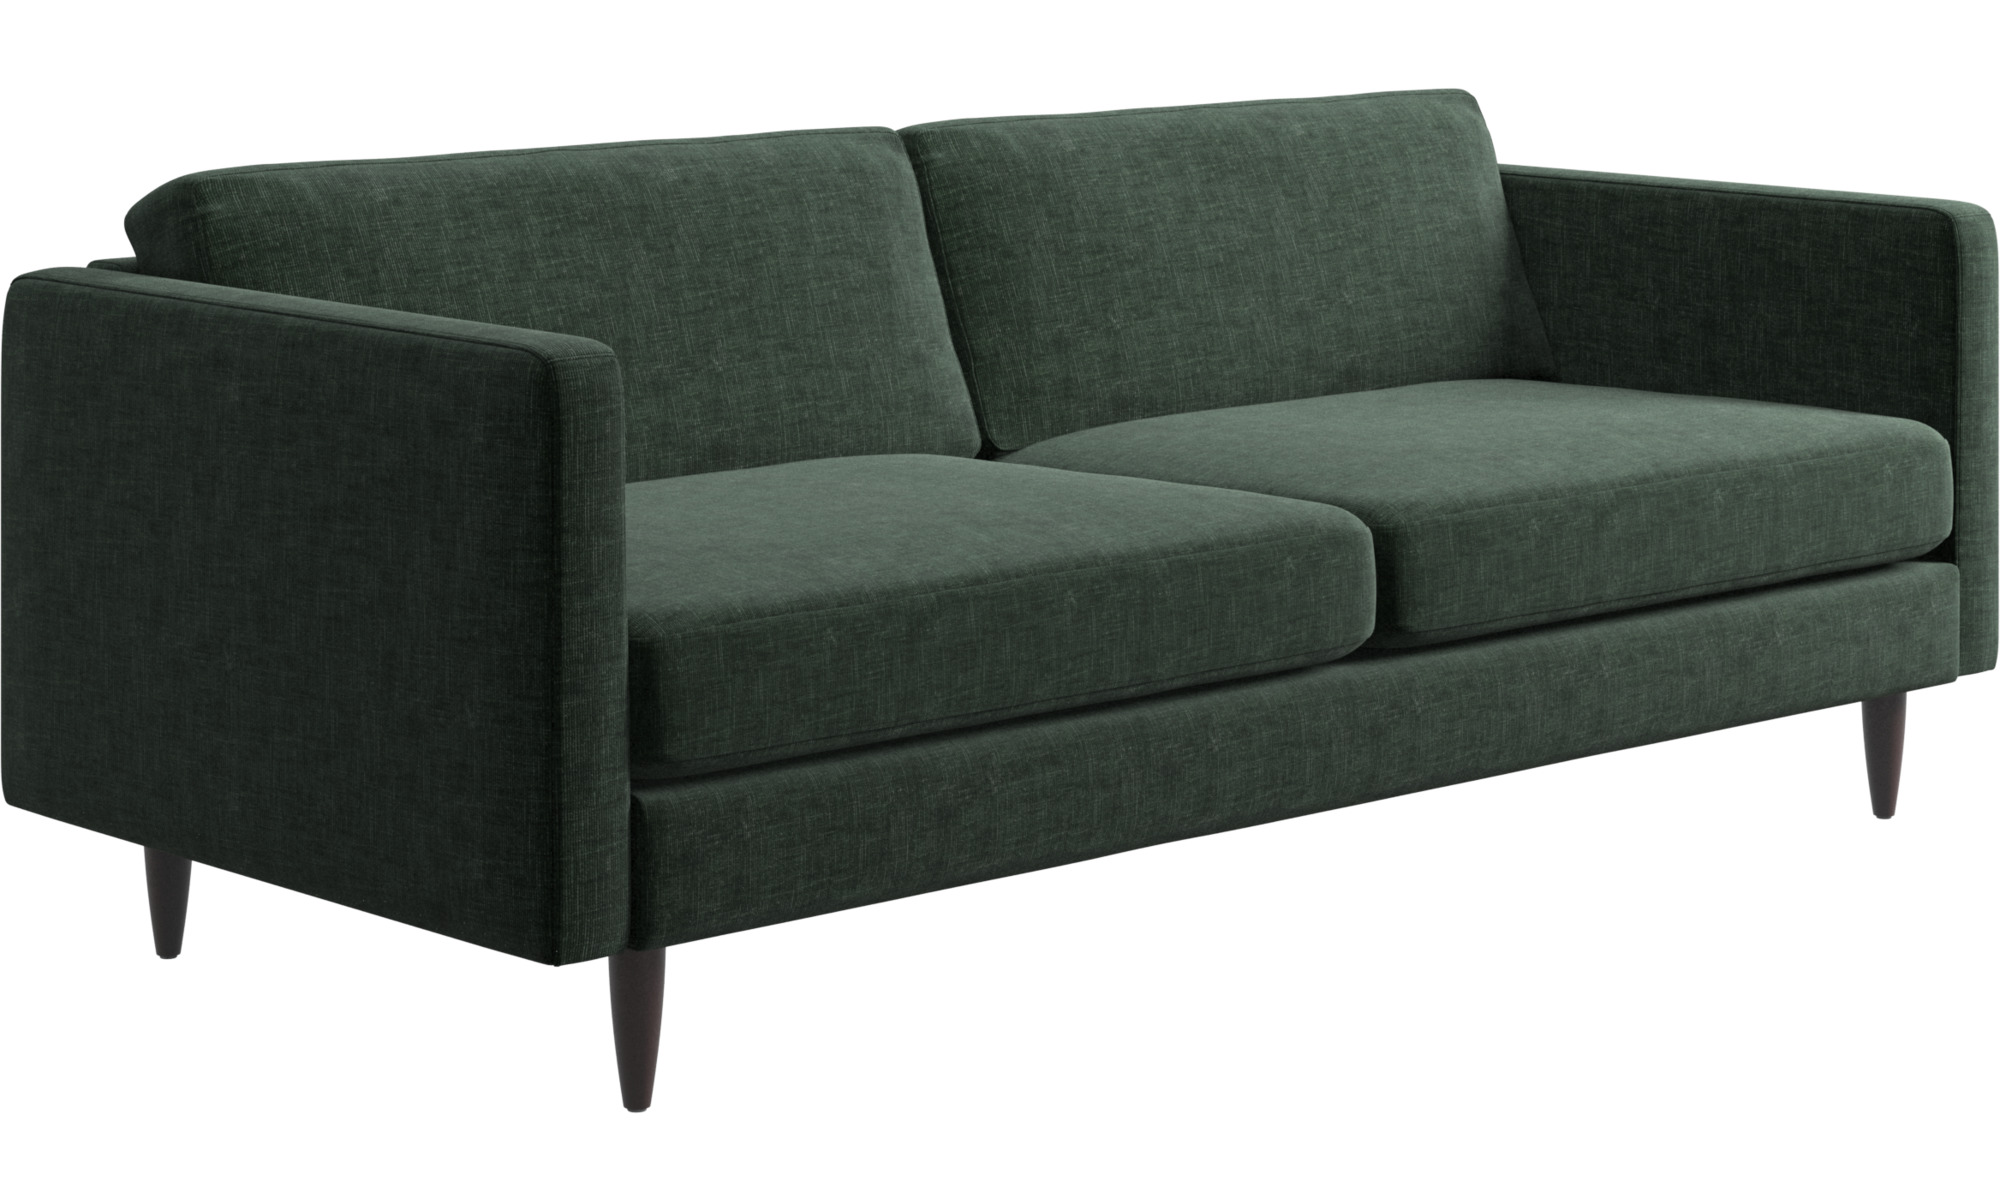 2 sitzer sofas osaka sofa klassische sitzfl che boconcept. Black Bedroom Furniture Sets. Home Design Ideas